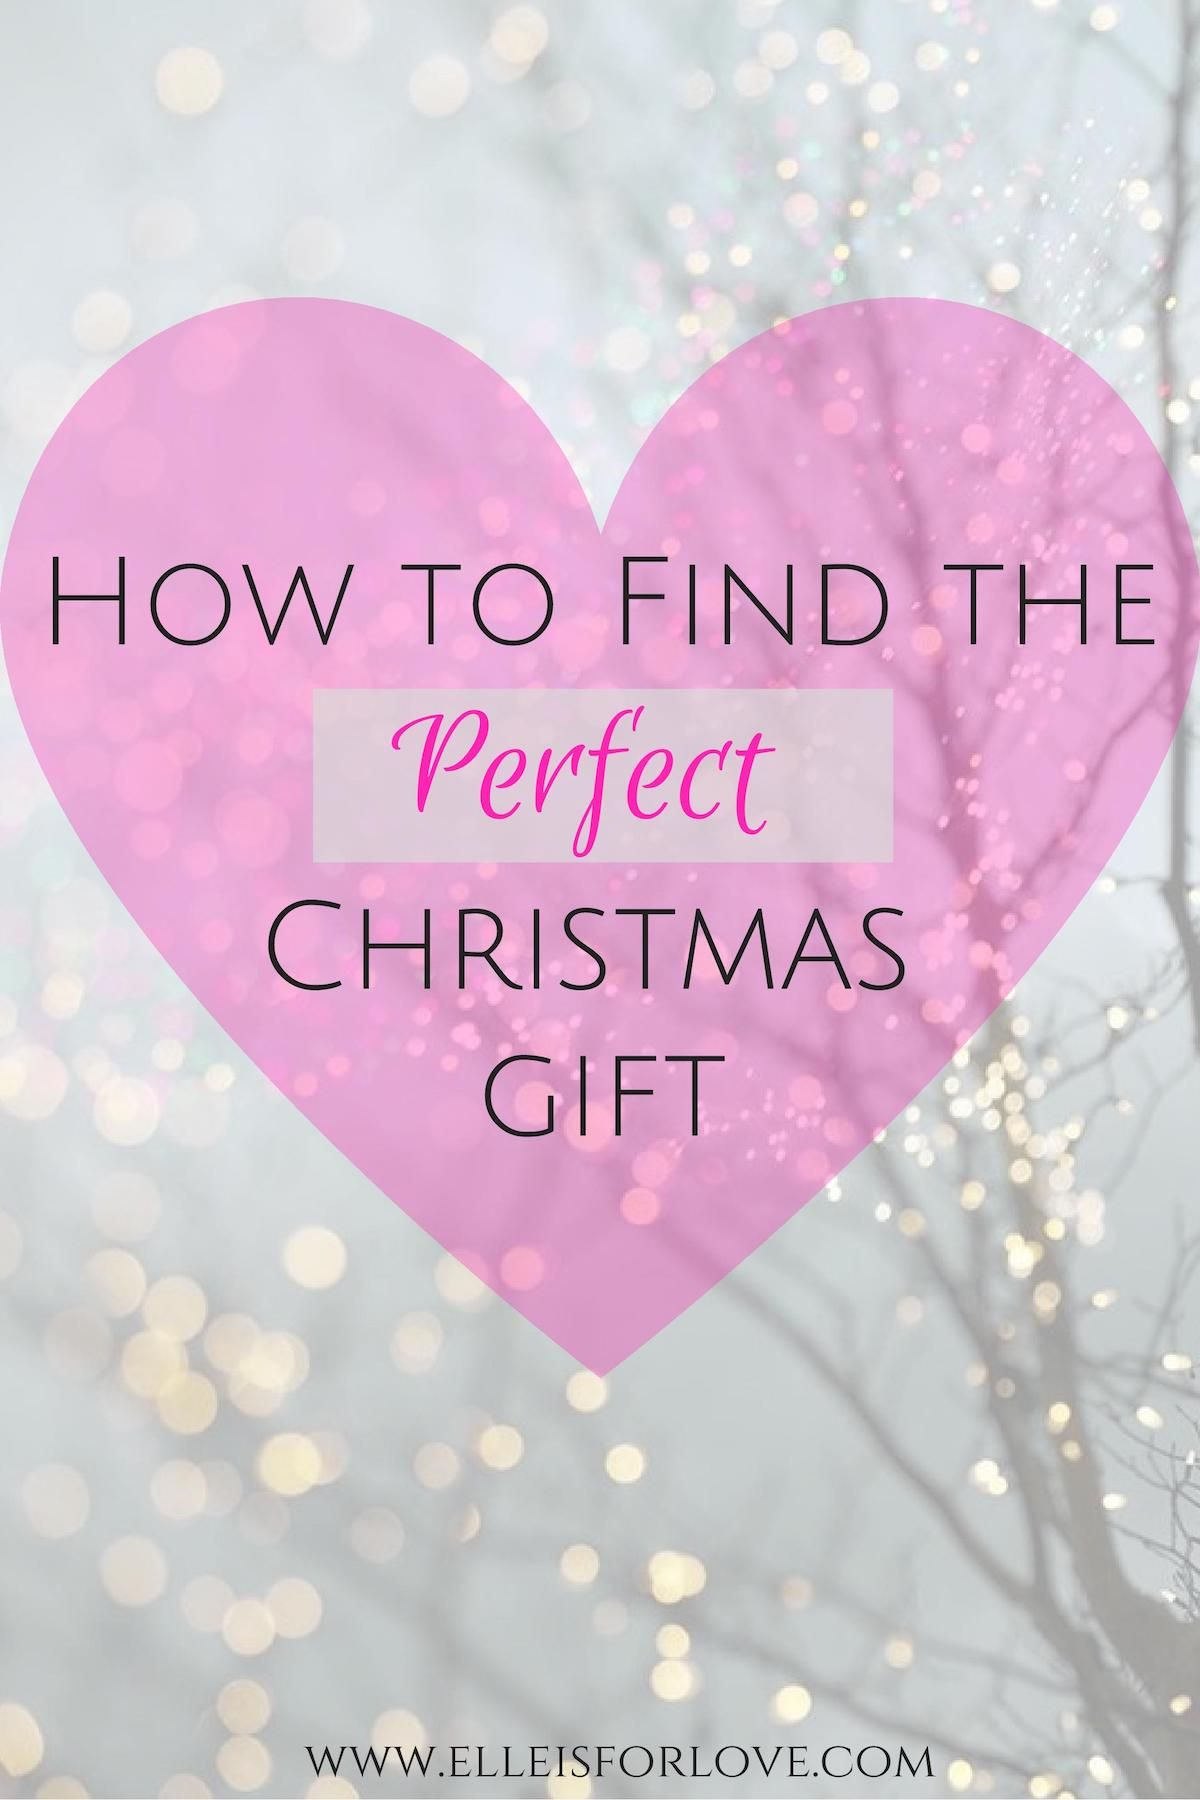 a step by step guide on how to find the perfect christmas gifts for everyone on your list whether they were naughty or nice